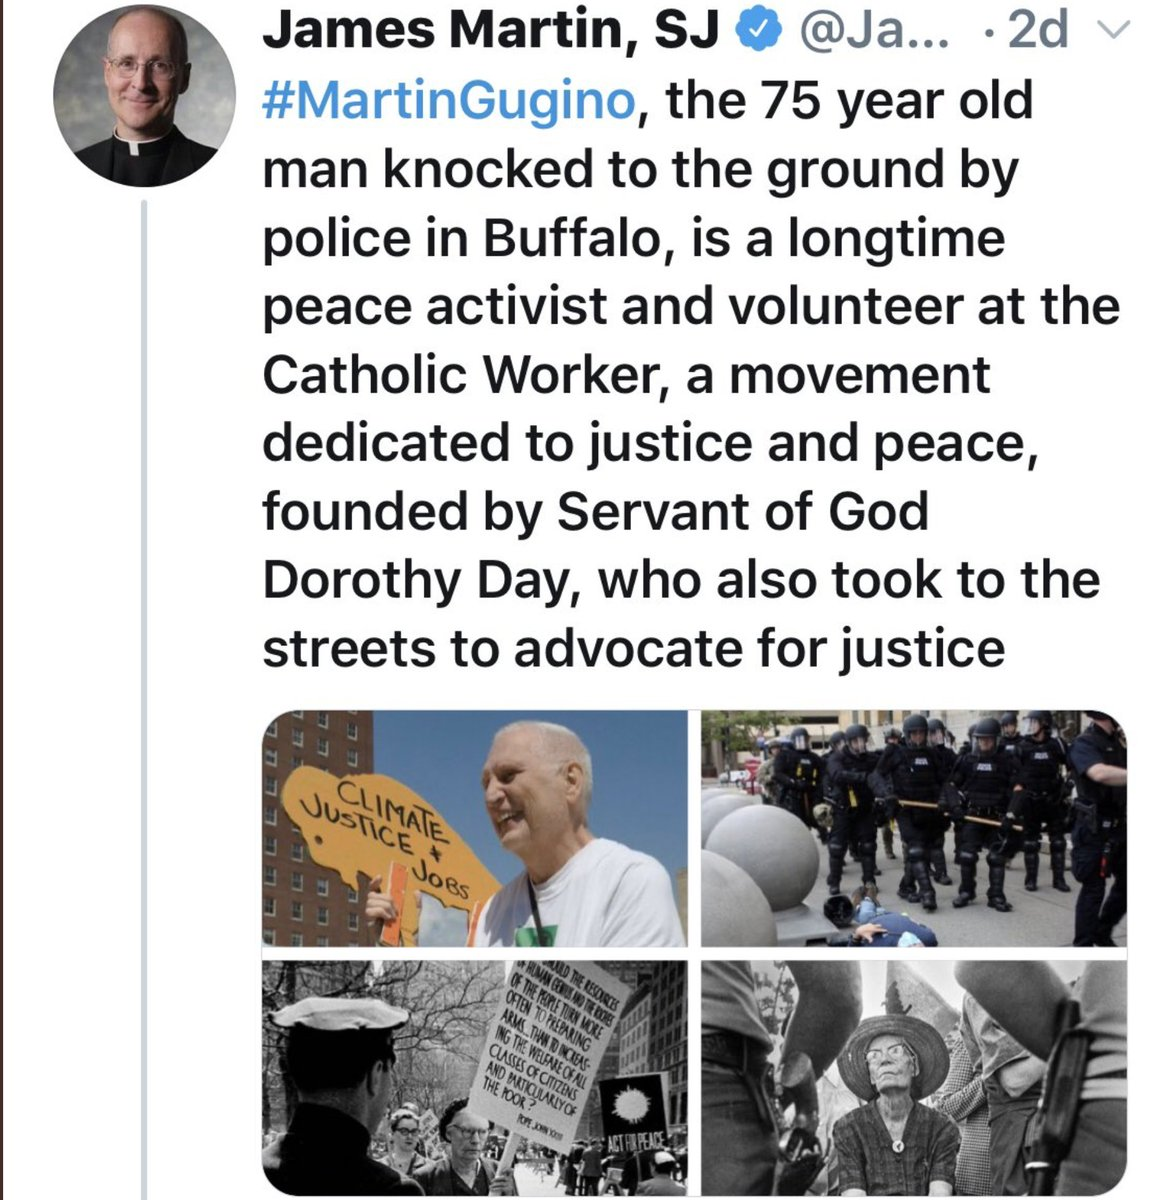 @mike_curd @ABC7 Yeah except a priest from his church confirmed he's a peaceful activist and volunteer...